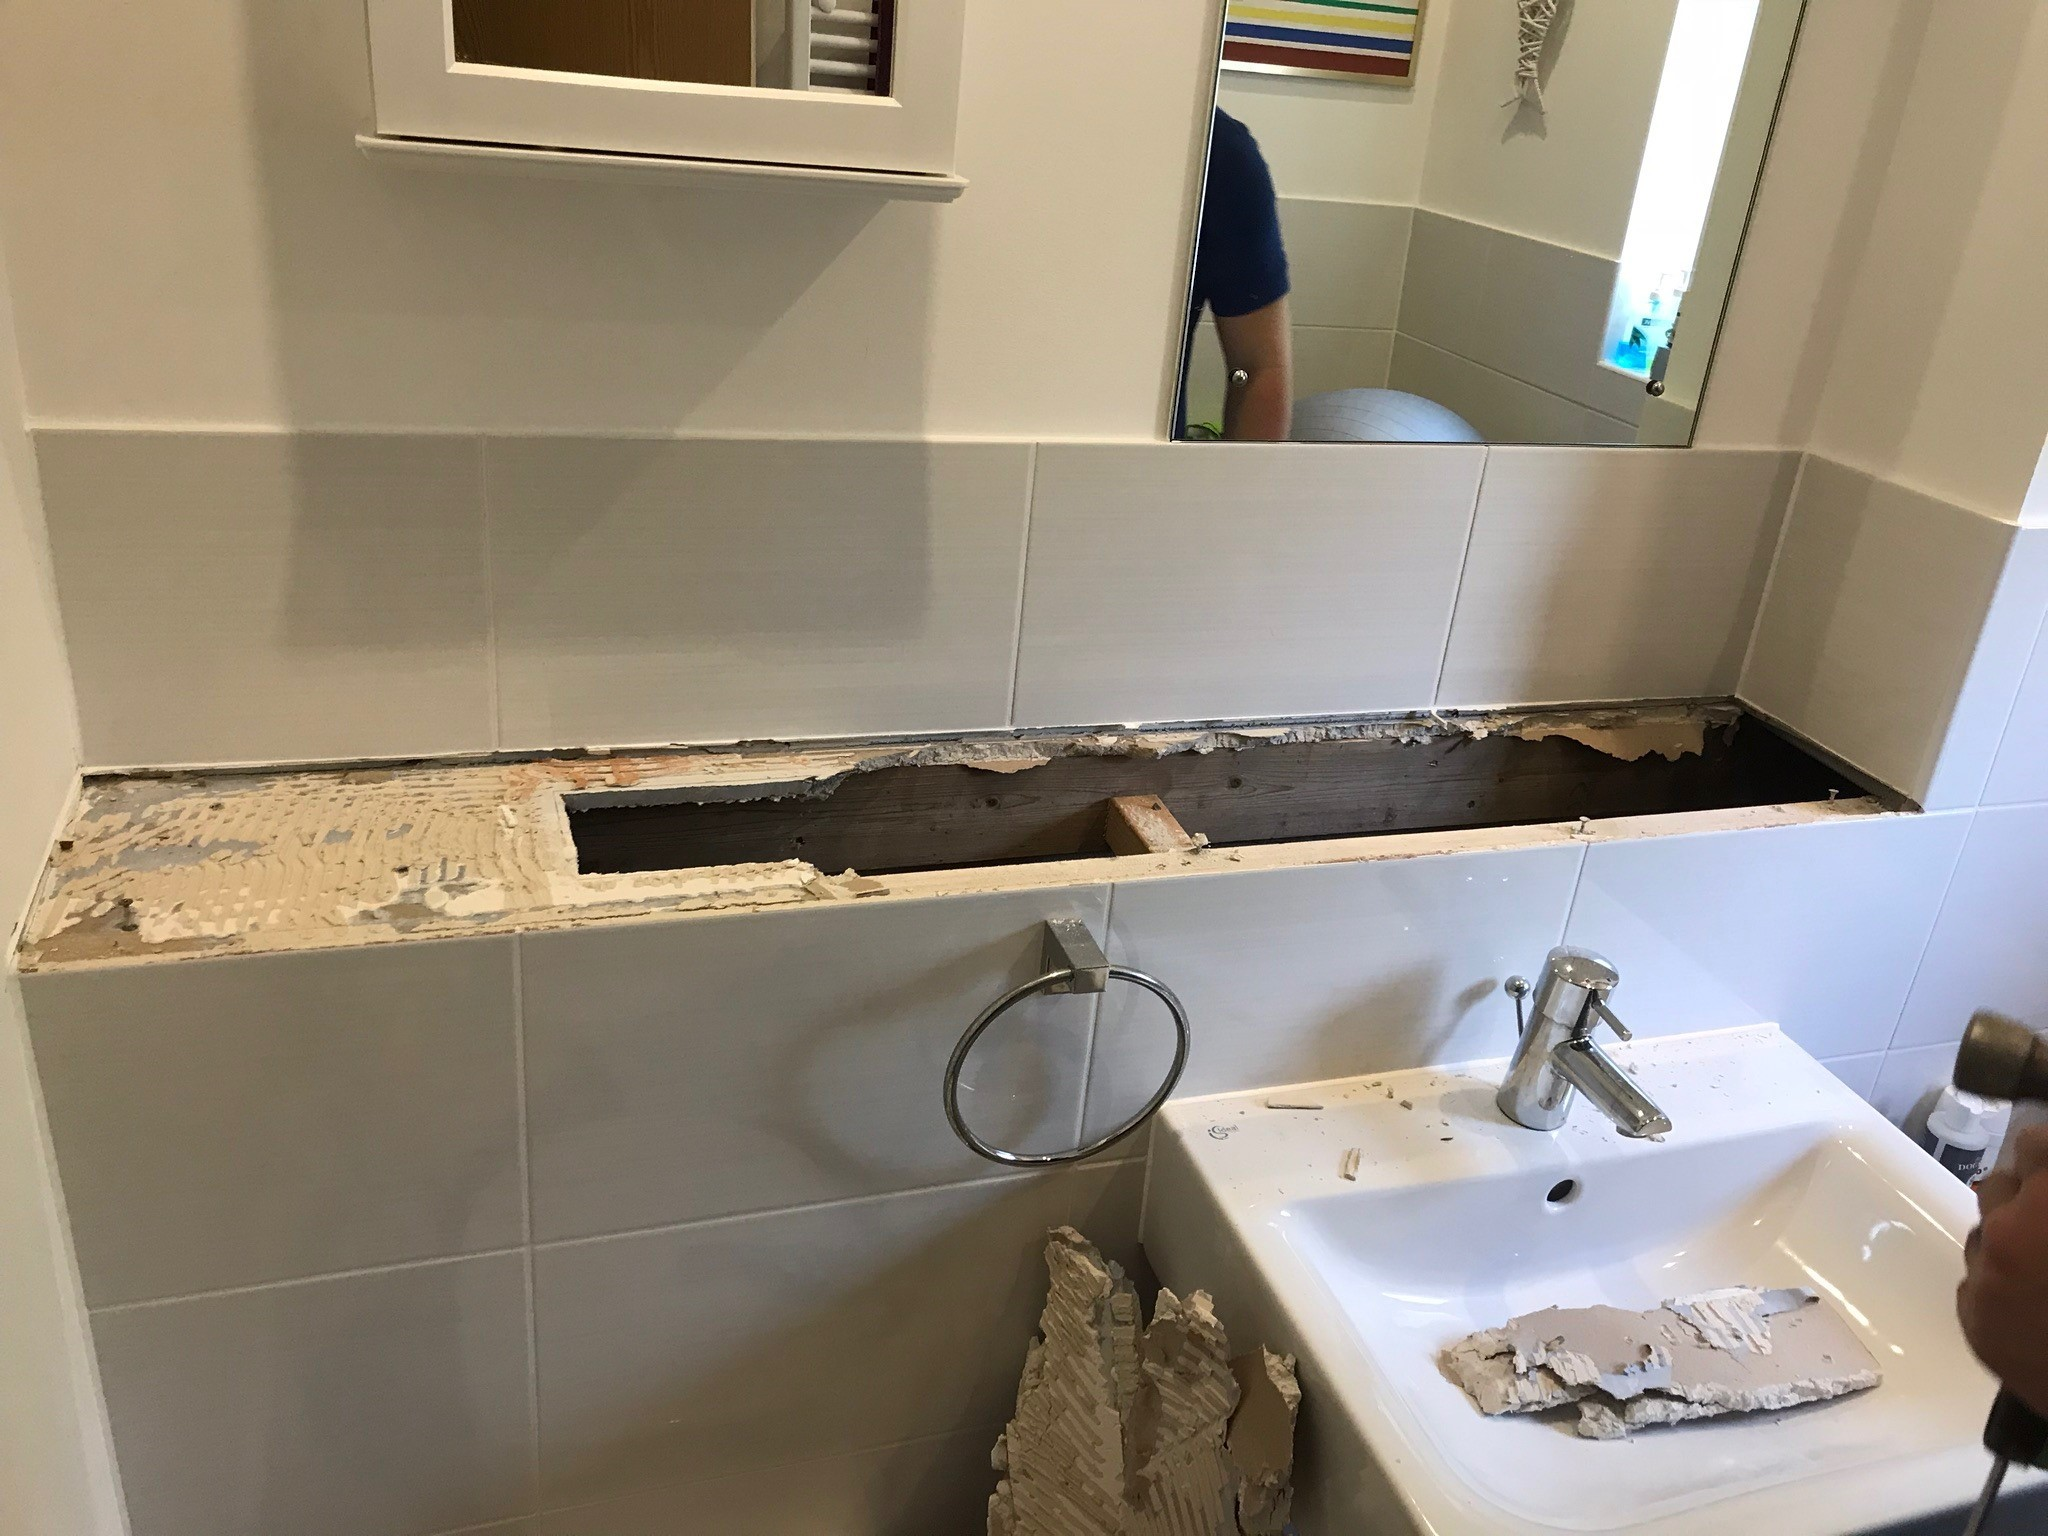 A bathroom leak in one house in Cholsey Meadows created damp in the living room ceiling. Picture: Mike Lowery